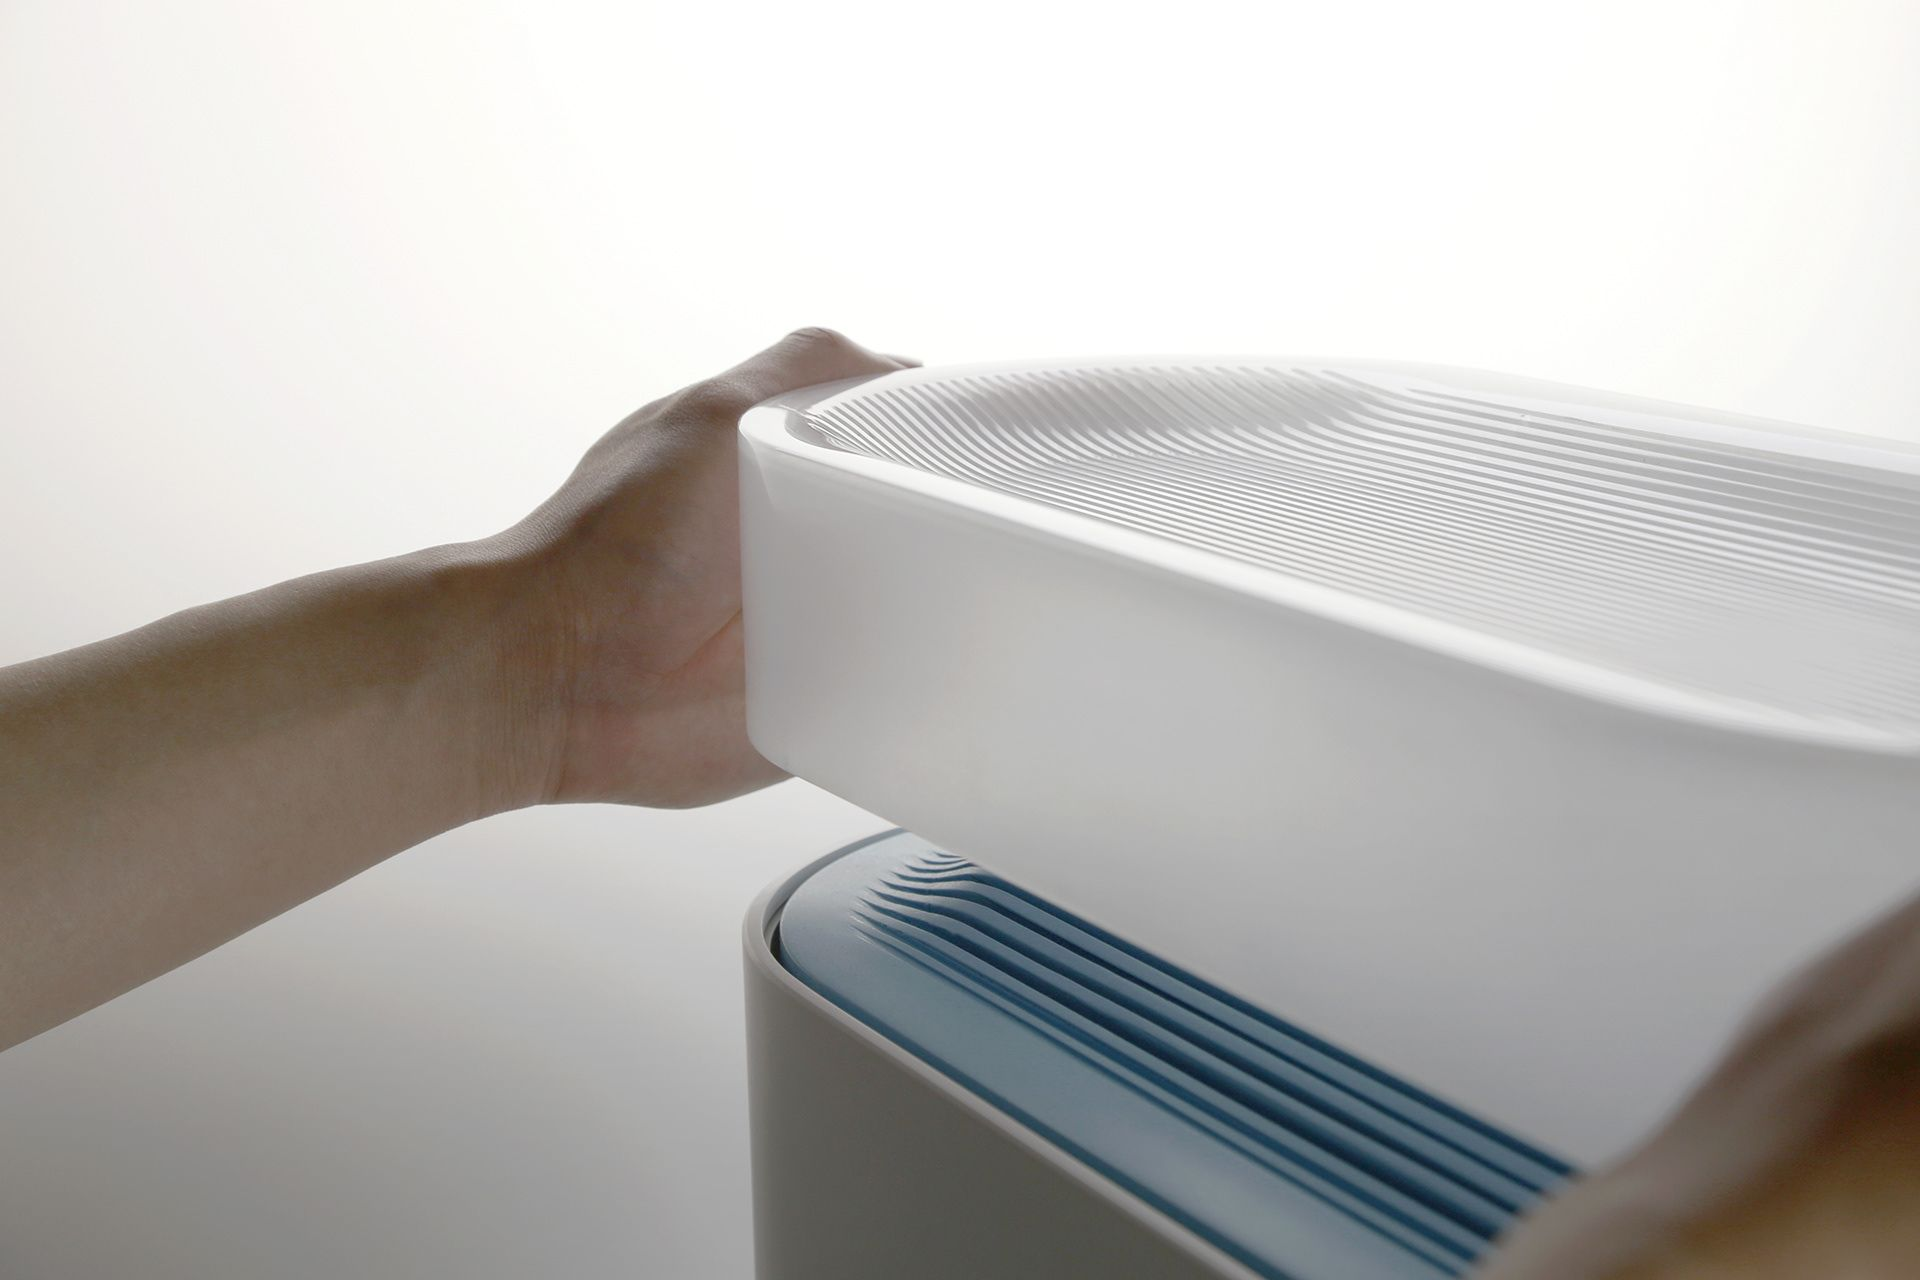 Bringing clean air into homes on Behance